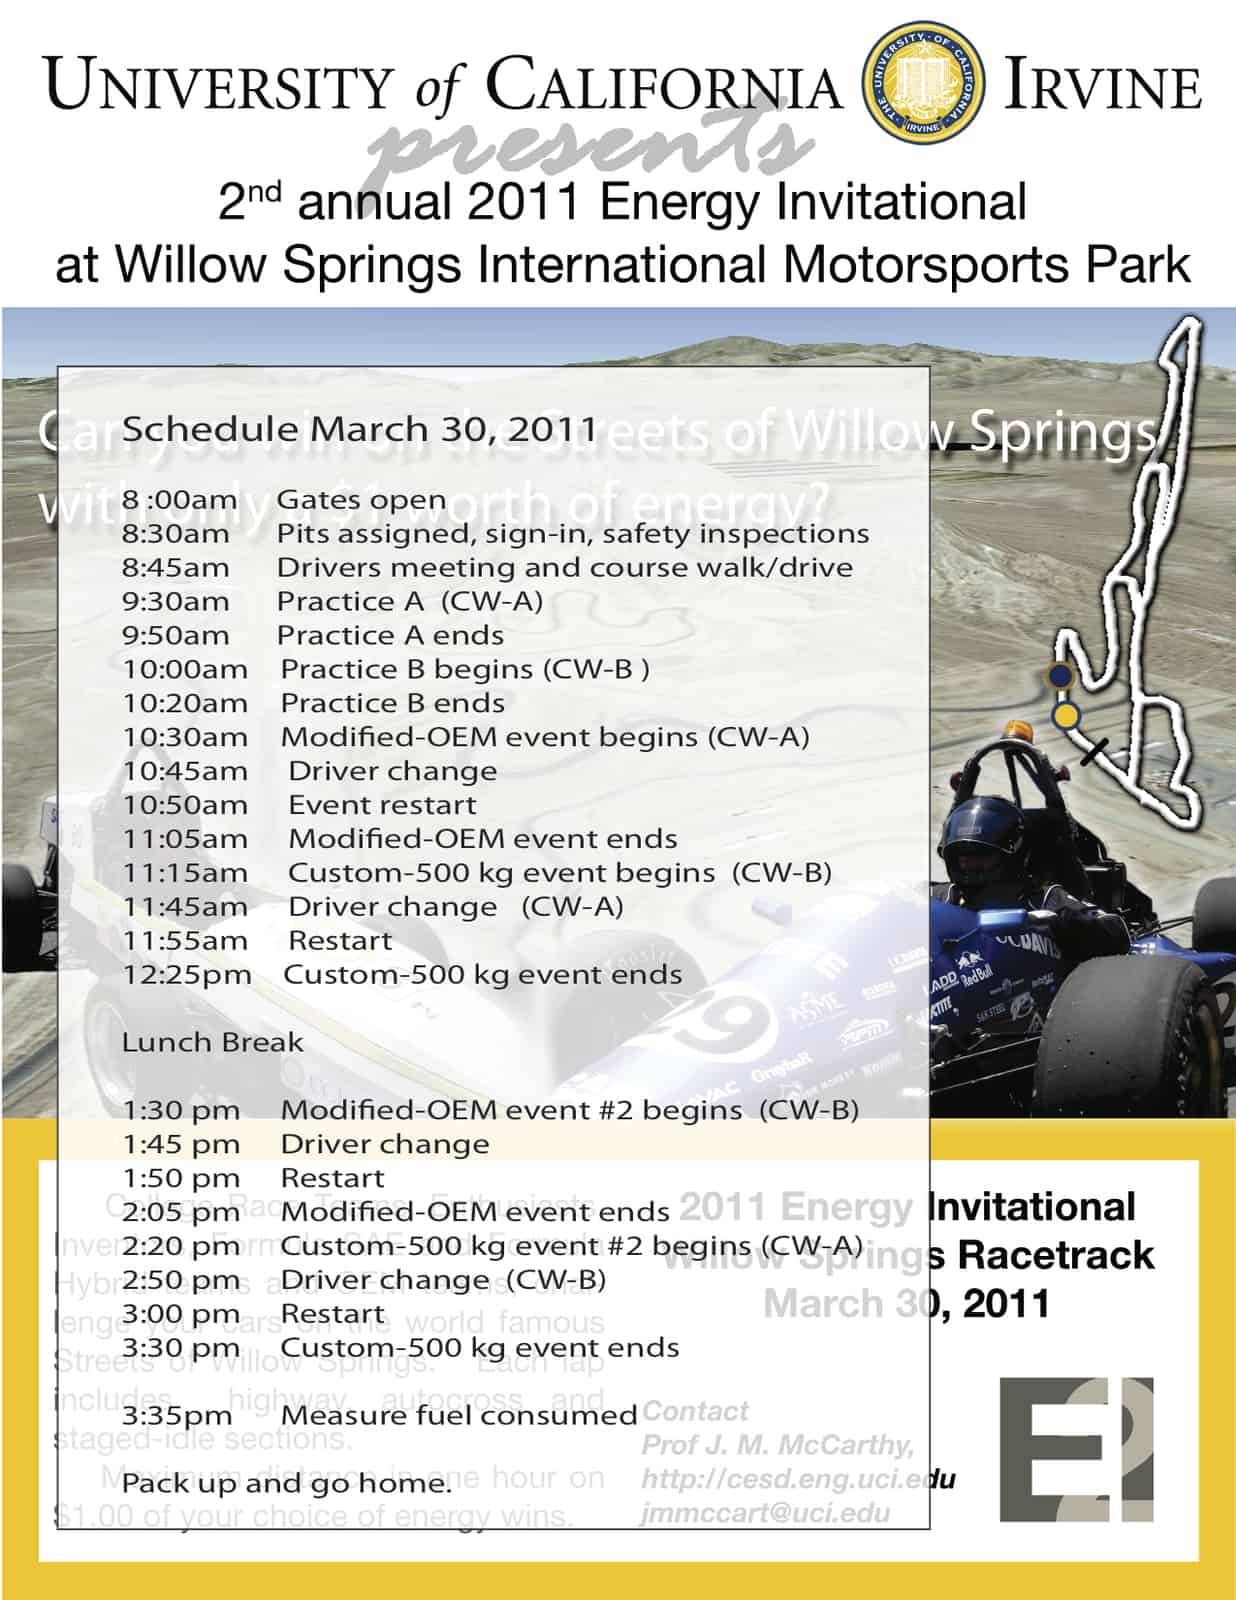 Schedule for 2011 Energy Invitational